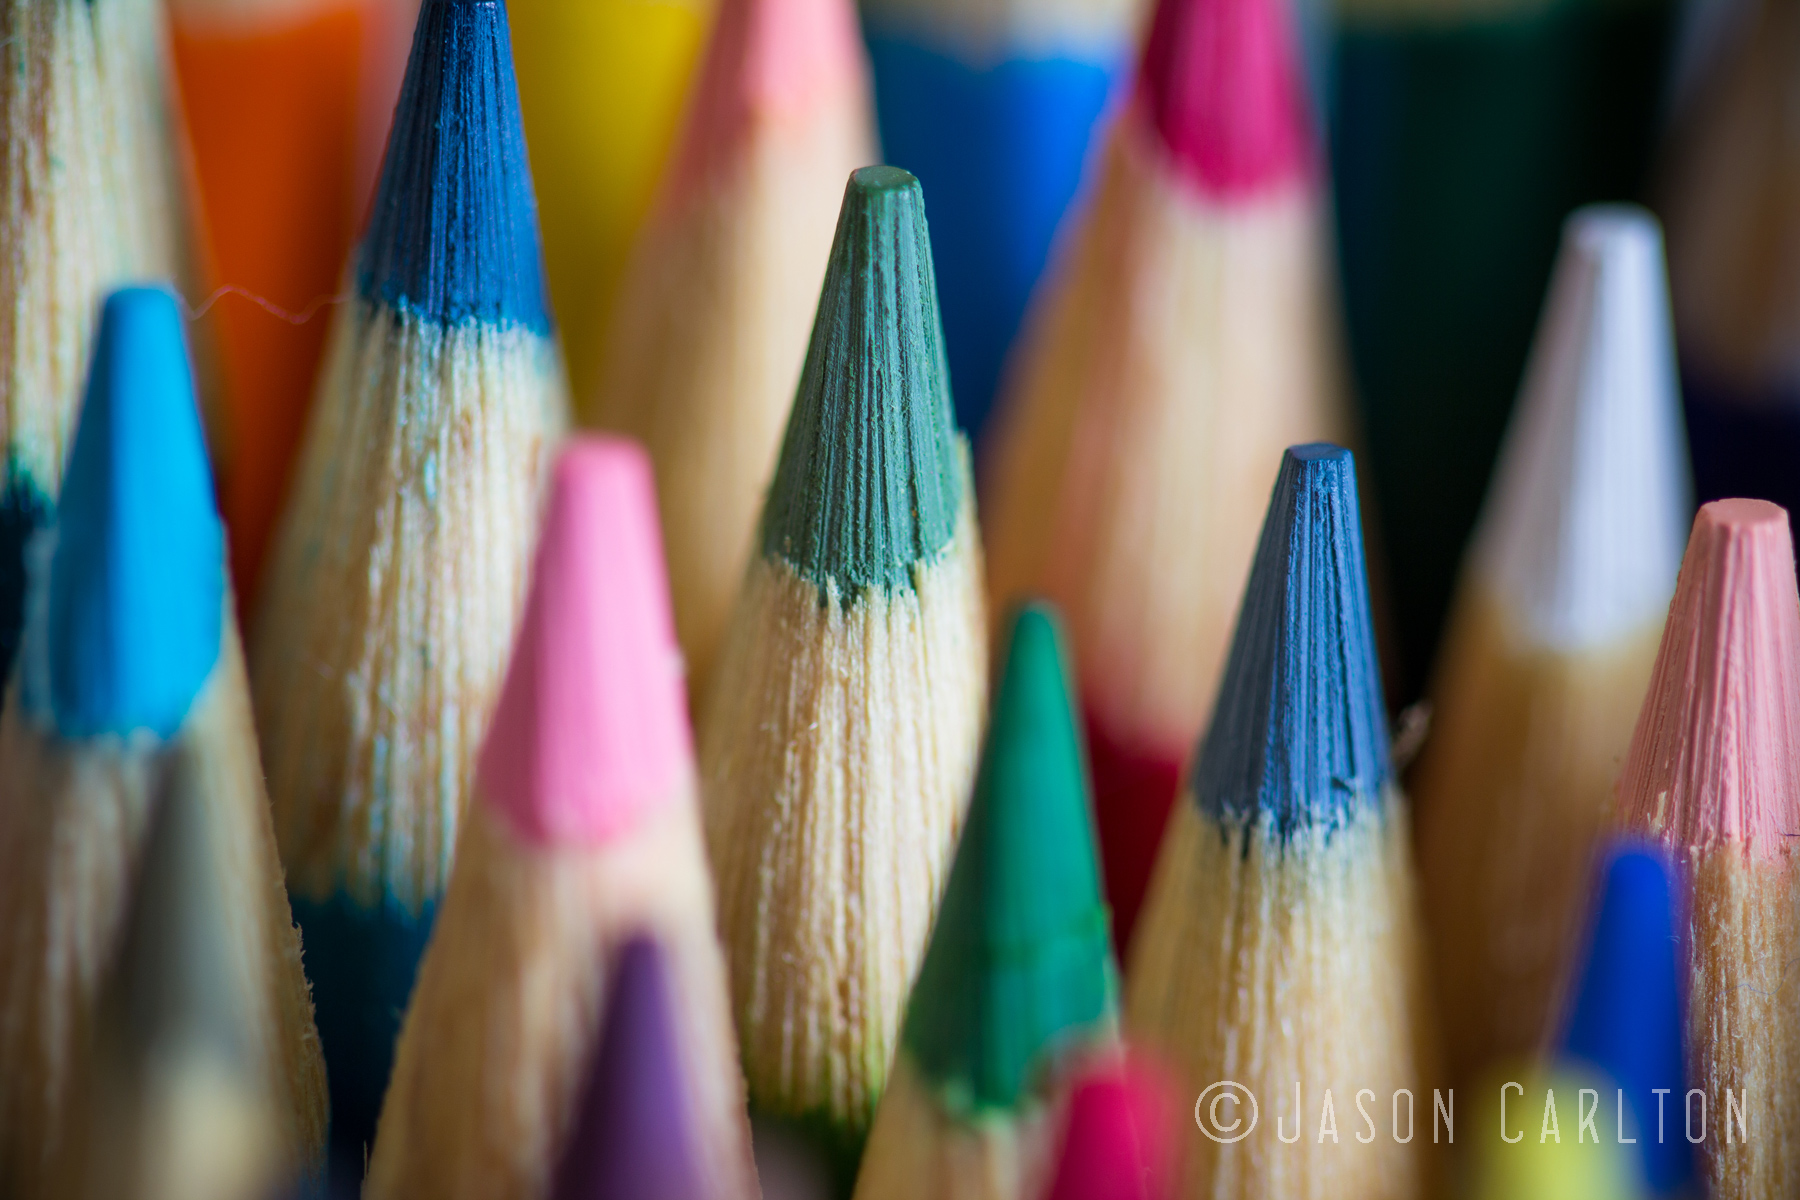 Photo Of Colored Pencils Using Depth Of Field Carltonaut